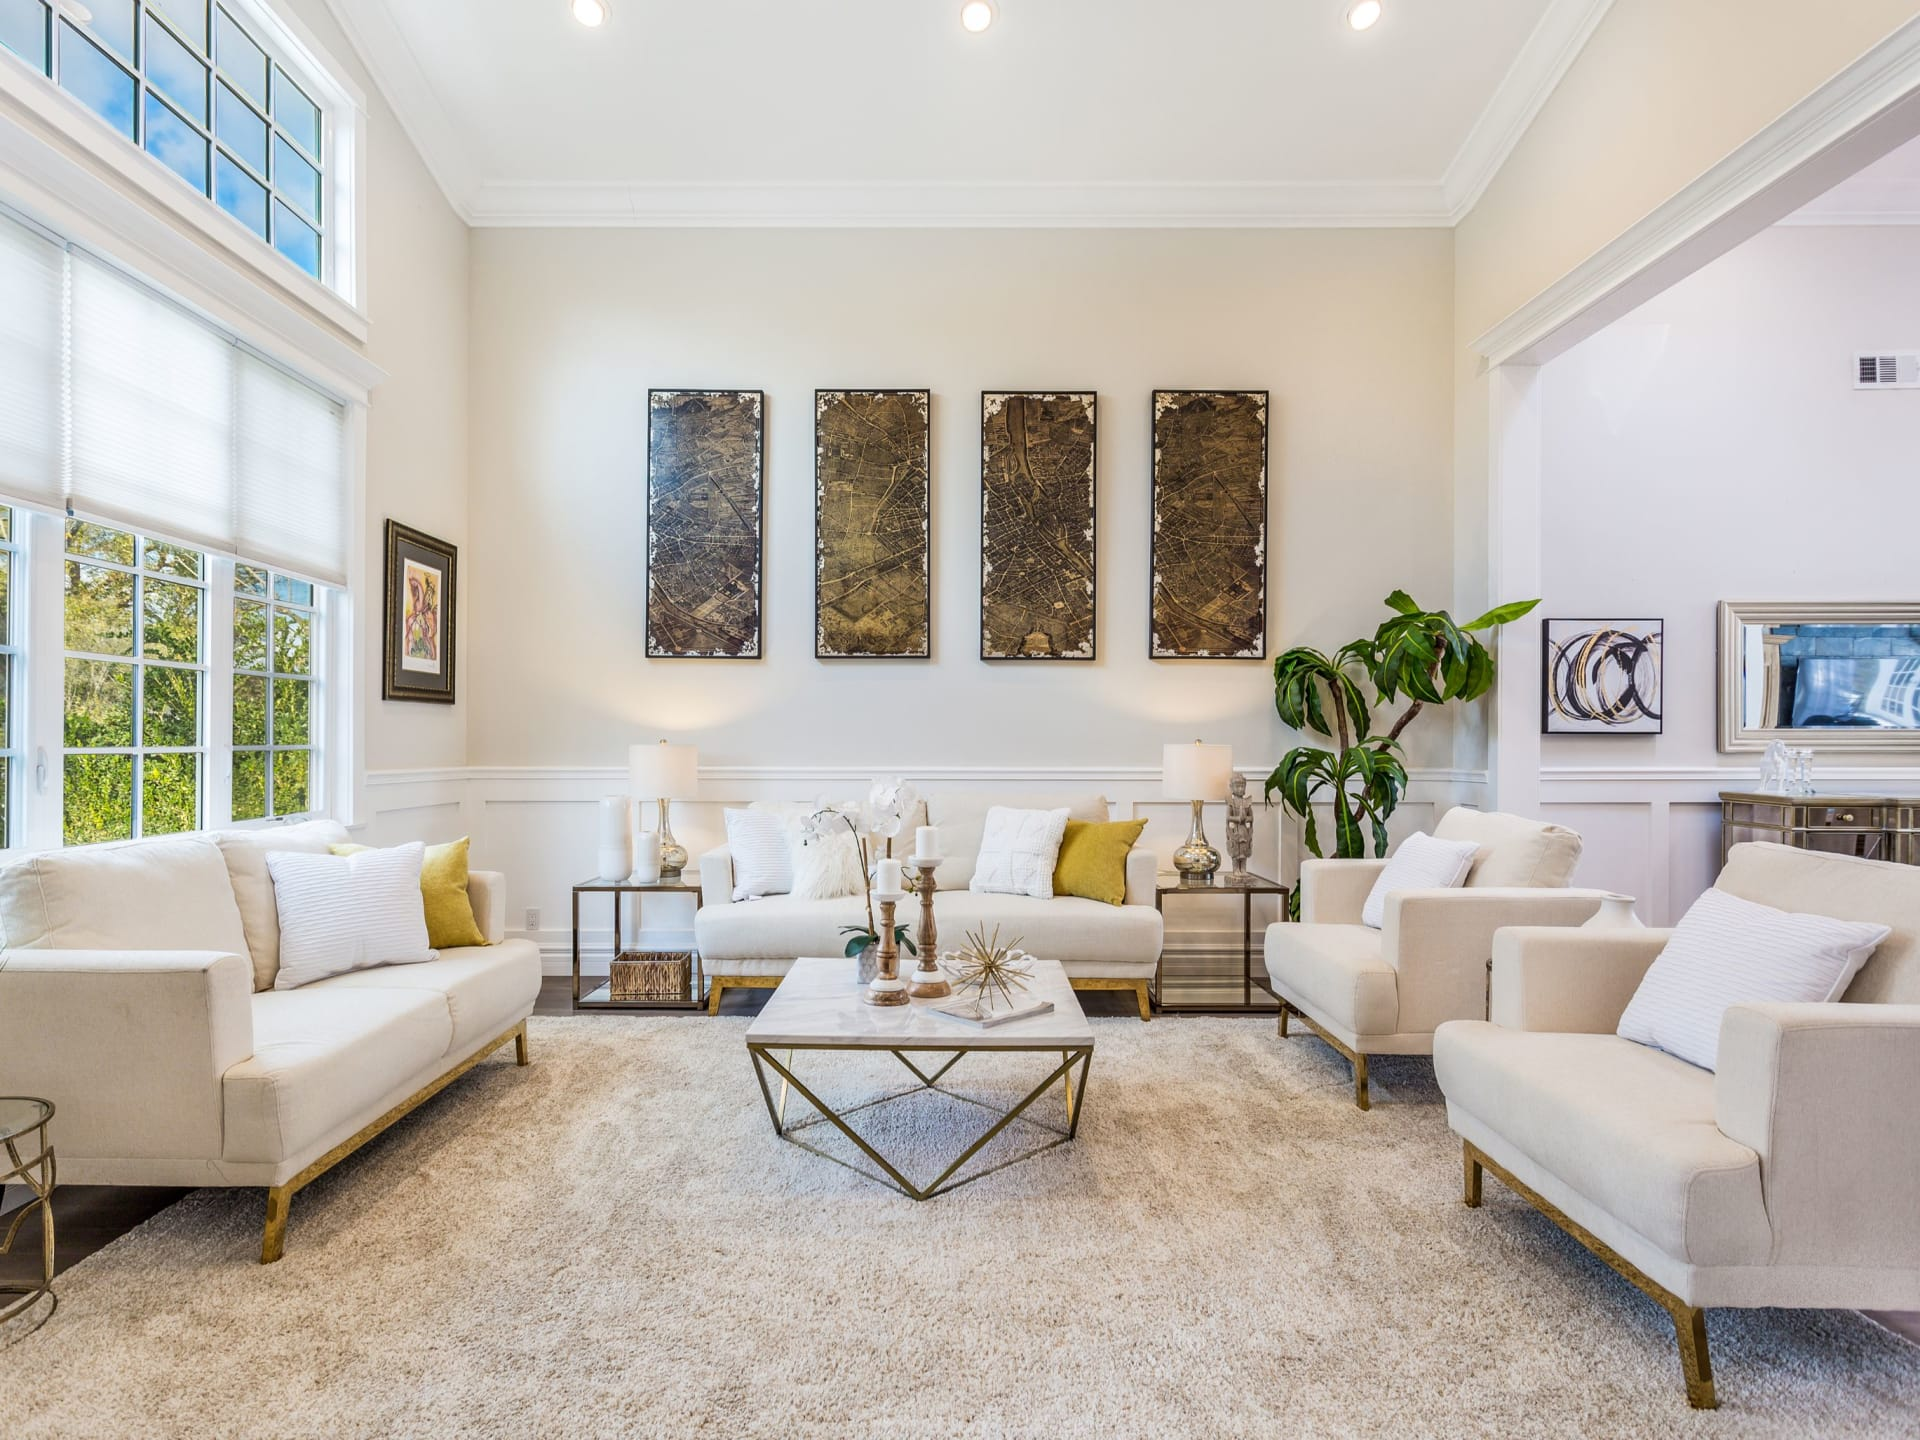 Dramatic and Expansive Single Story Home South of the Blvd